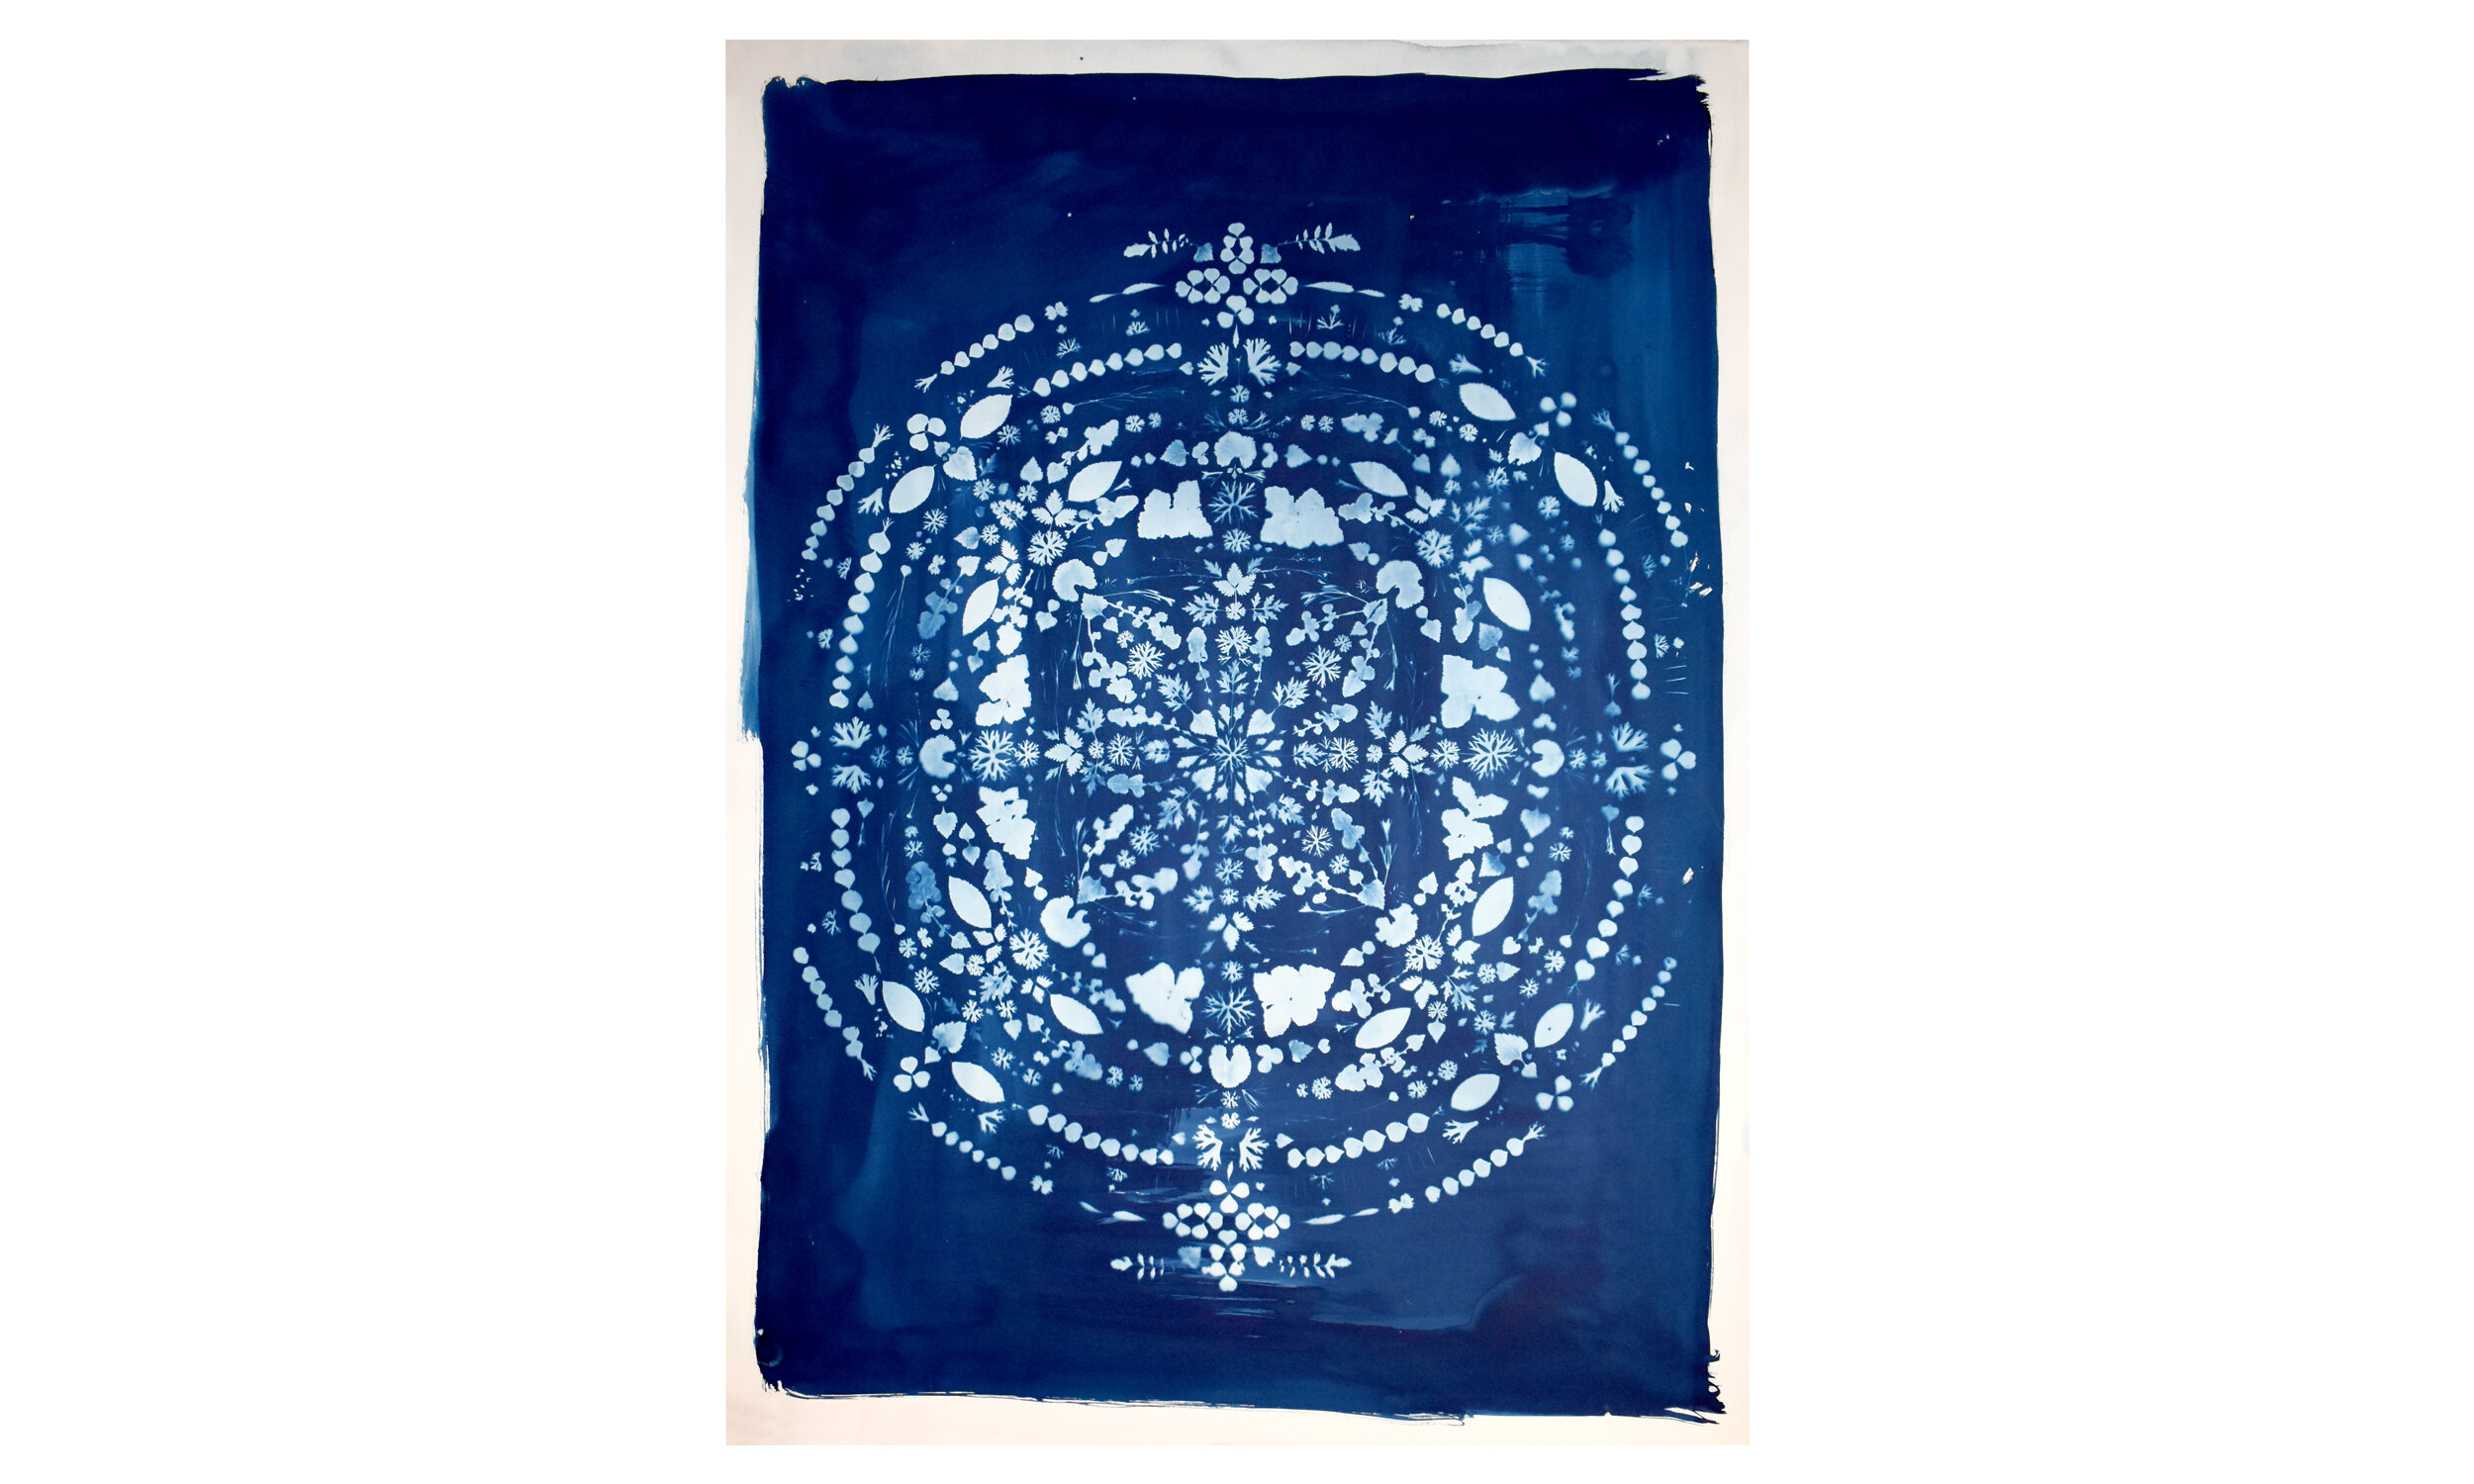 Earthly Mandala I,  cyanotype on paper 40.25 x 55.25 inches, unframed $ 3,500    Contact us for purchase